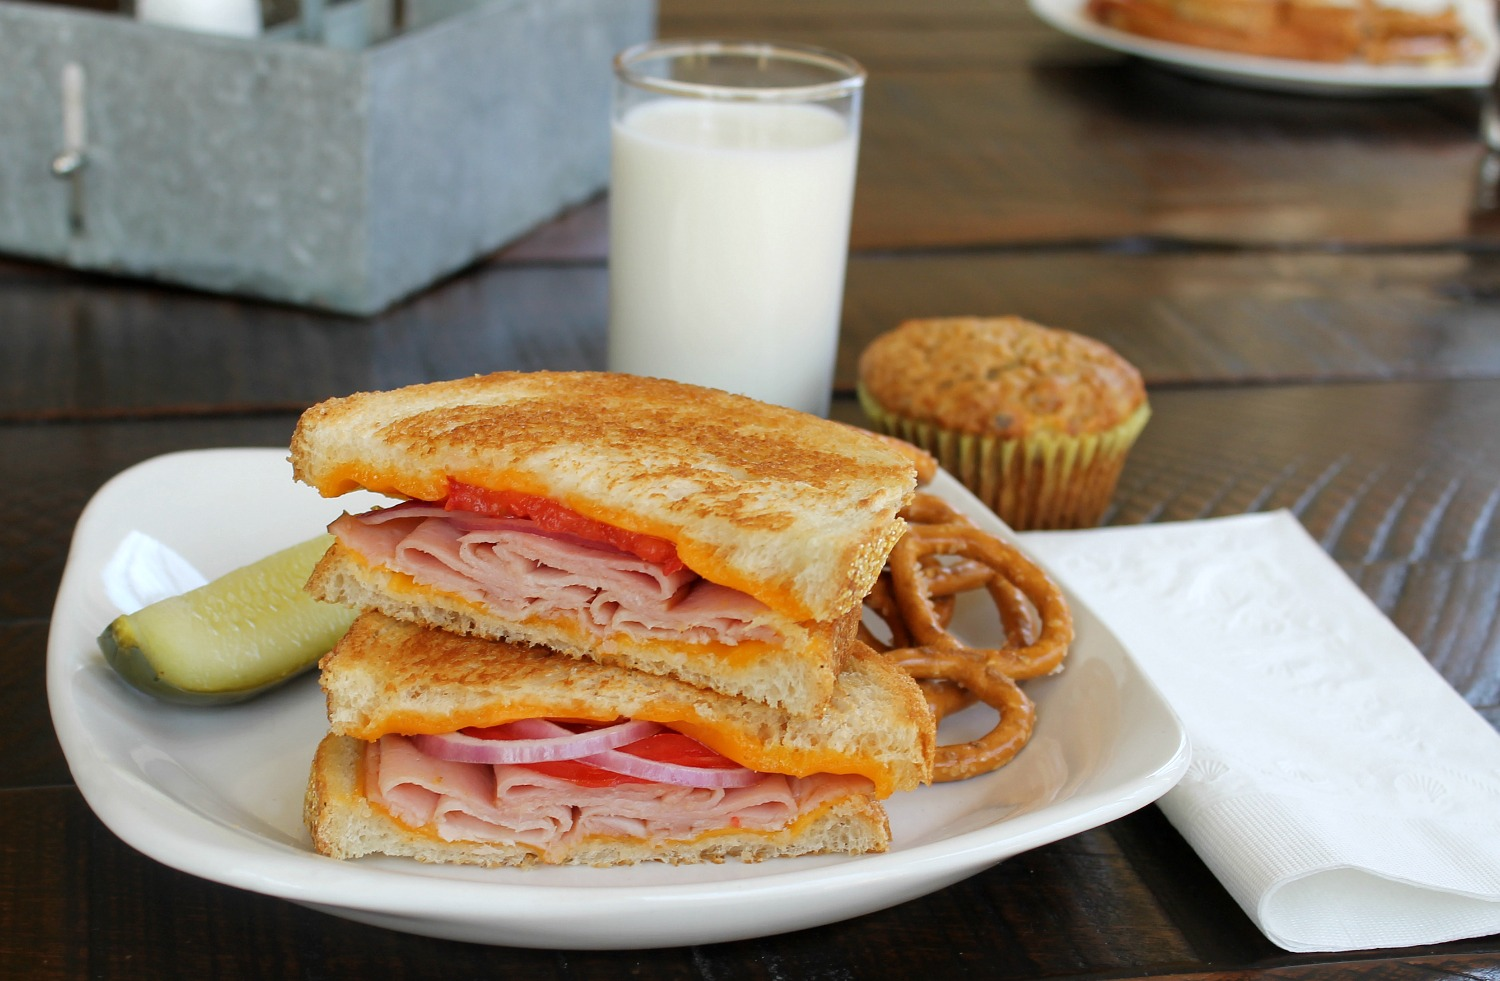 Grilled Ham and Cheese Sandwich with Hillshire Farms Naturals